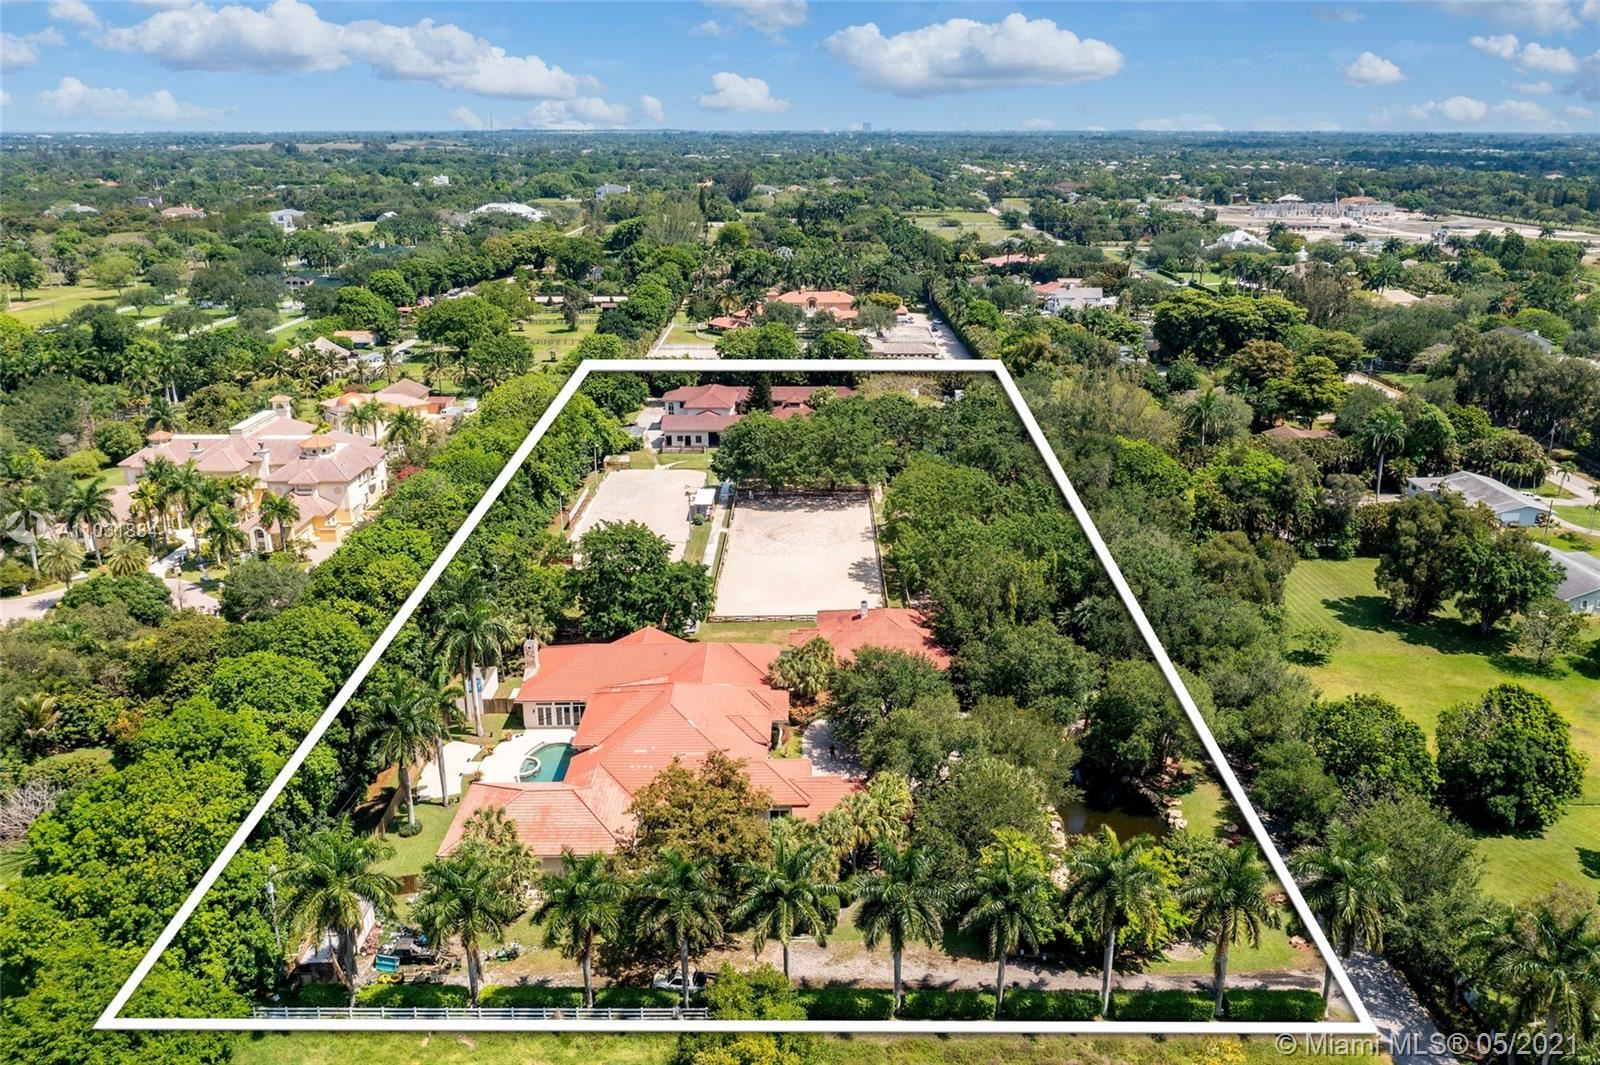 6401 Rodeo Dr, SouthWest Ranches, FL 33330 - #: A11031884